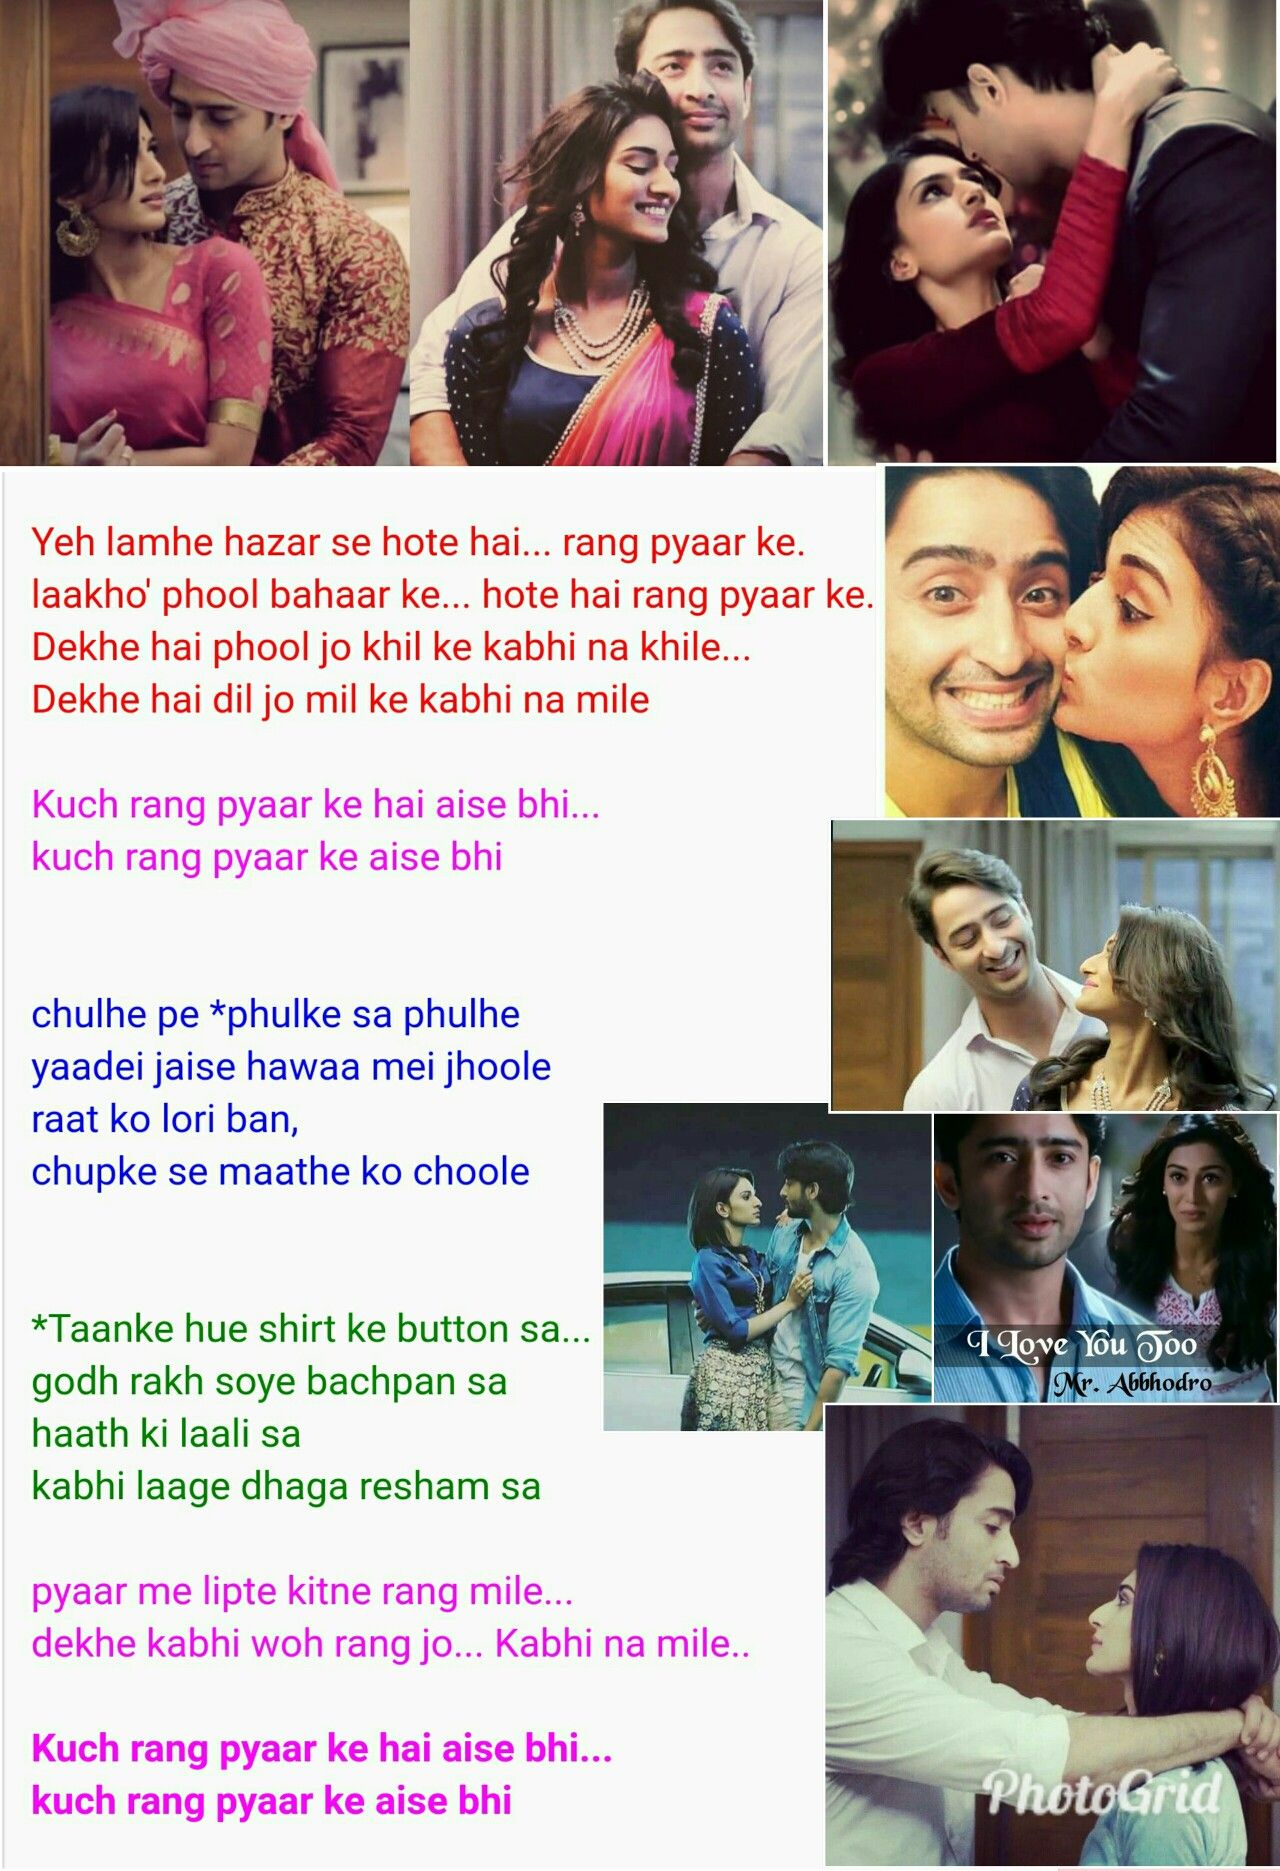 Pin By Charming Angel On Kuch Rang Pyar Ke Aise Bhi Bephana Cute Love Stories Bollywood Couples Cute Kids Photography